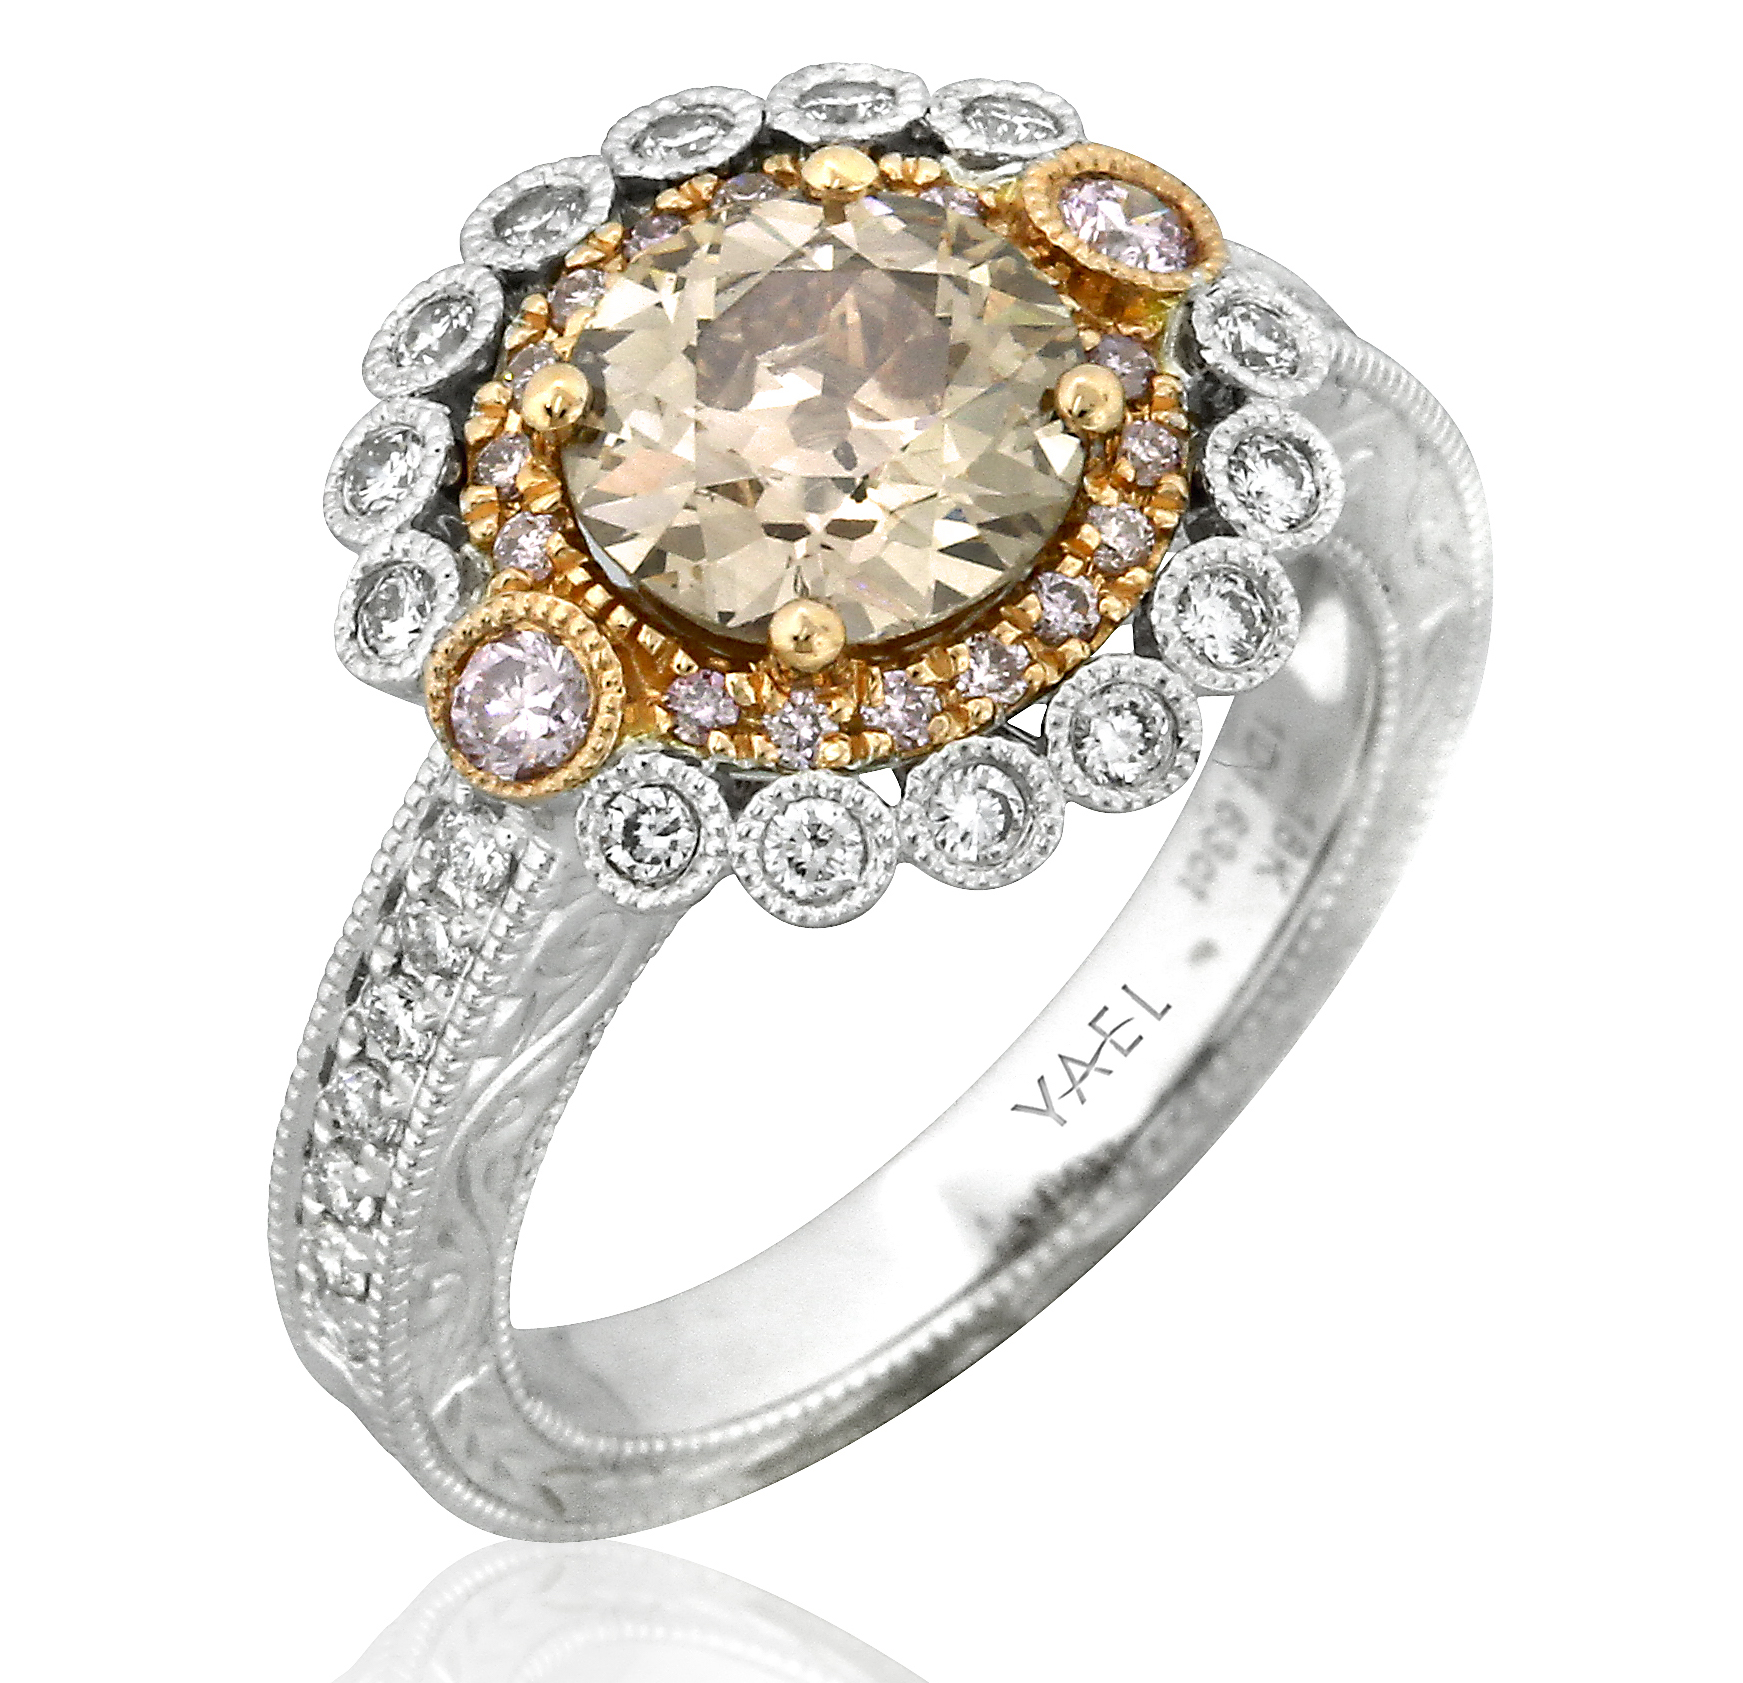 Yael Designs champagne diamond collection ring | JCK On Your Market